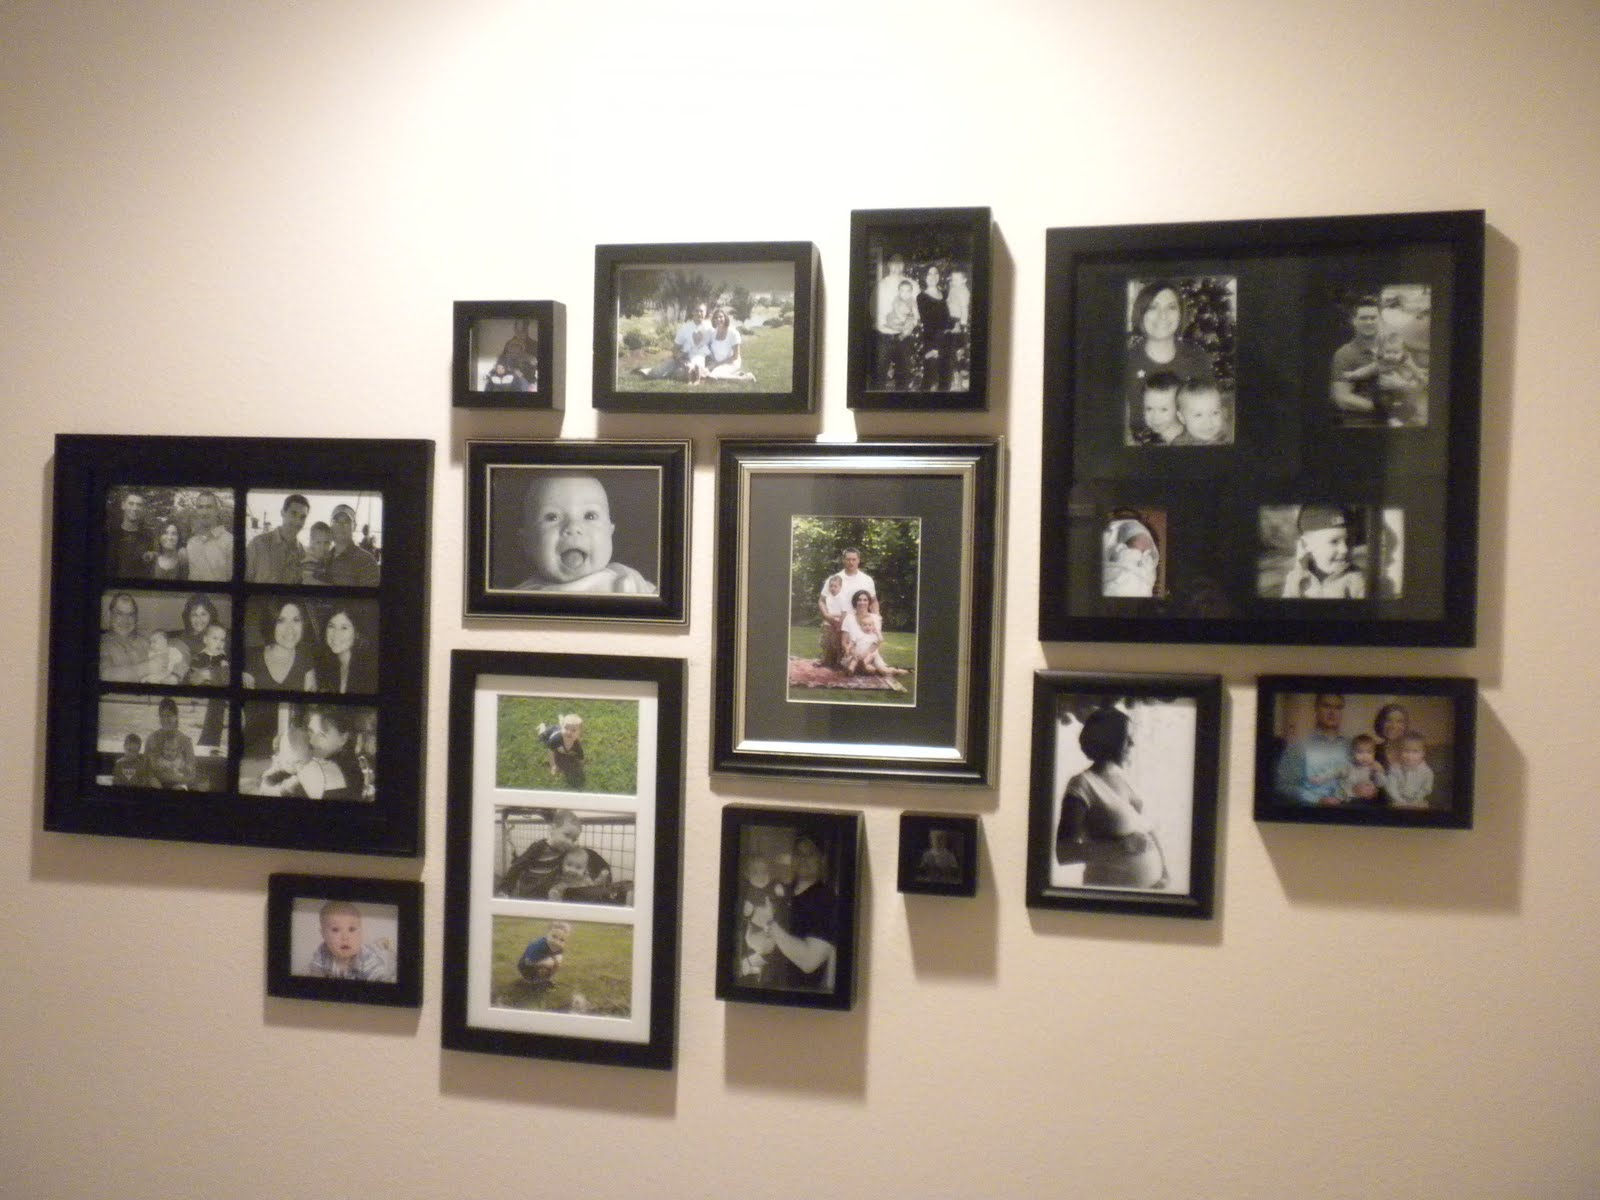 Art picture wall arrangements on pinterest photo walls Painting arrangements on wall